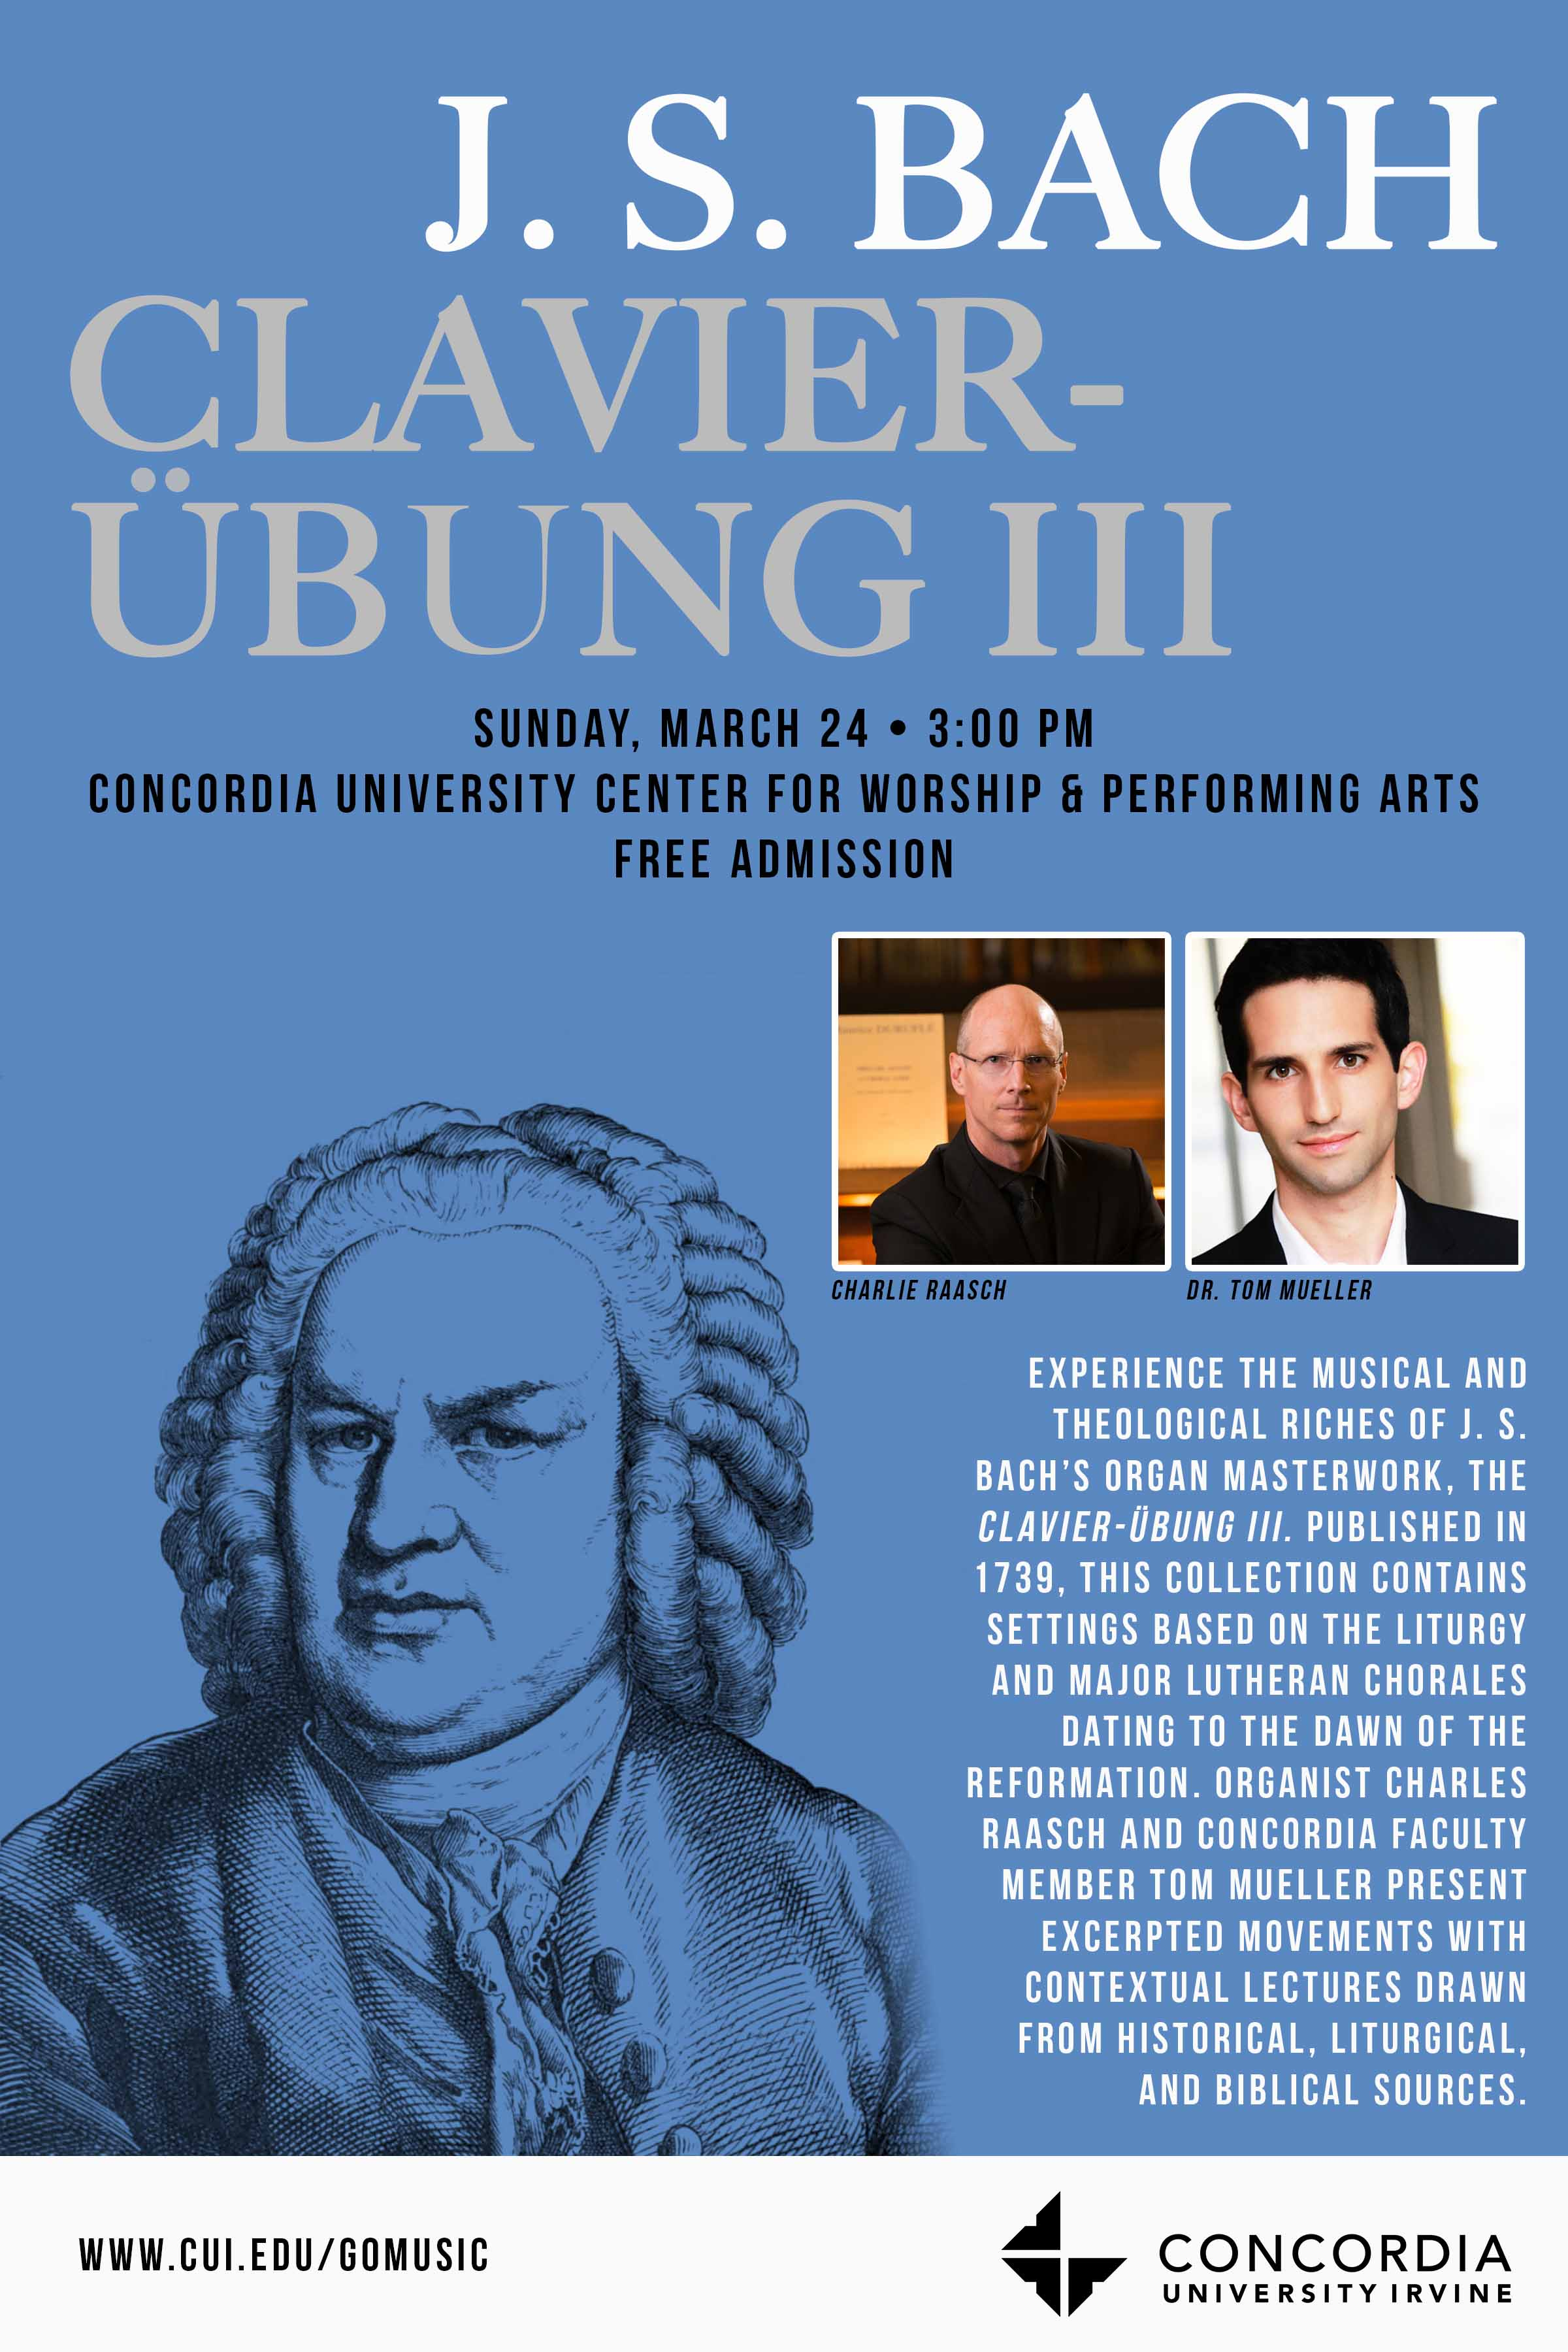 J.S. Bach Clavier-Ubung III performance poster